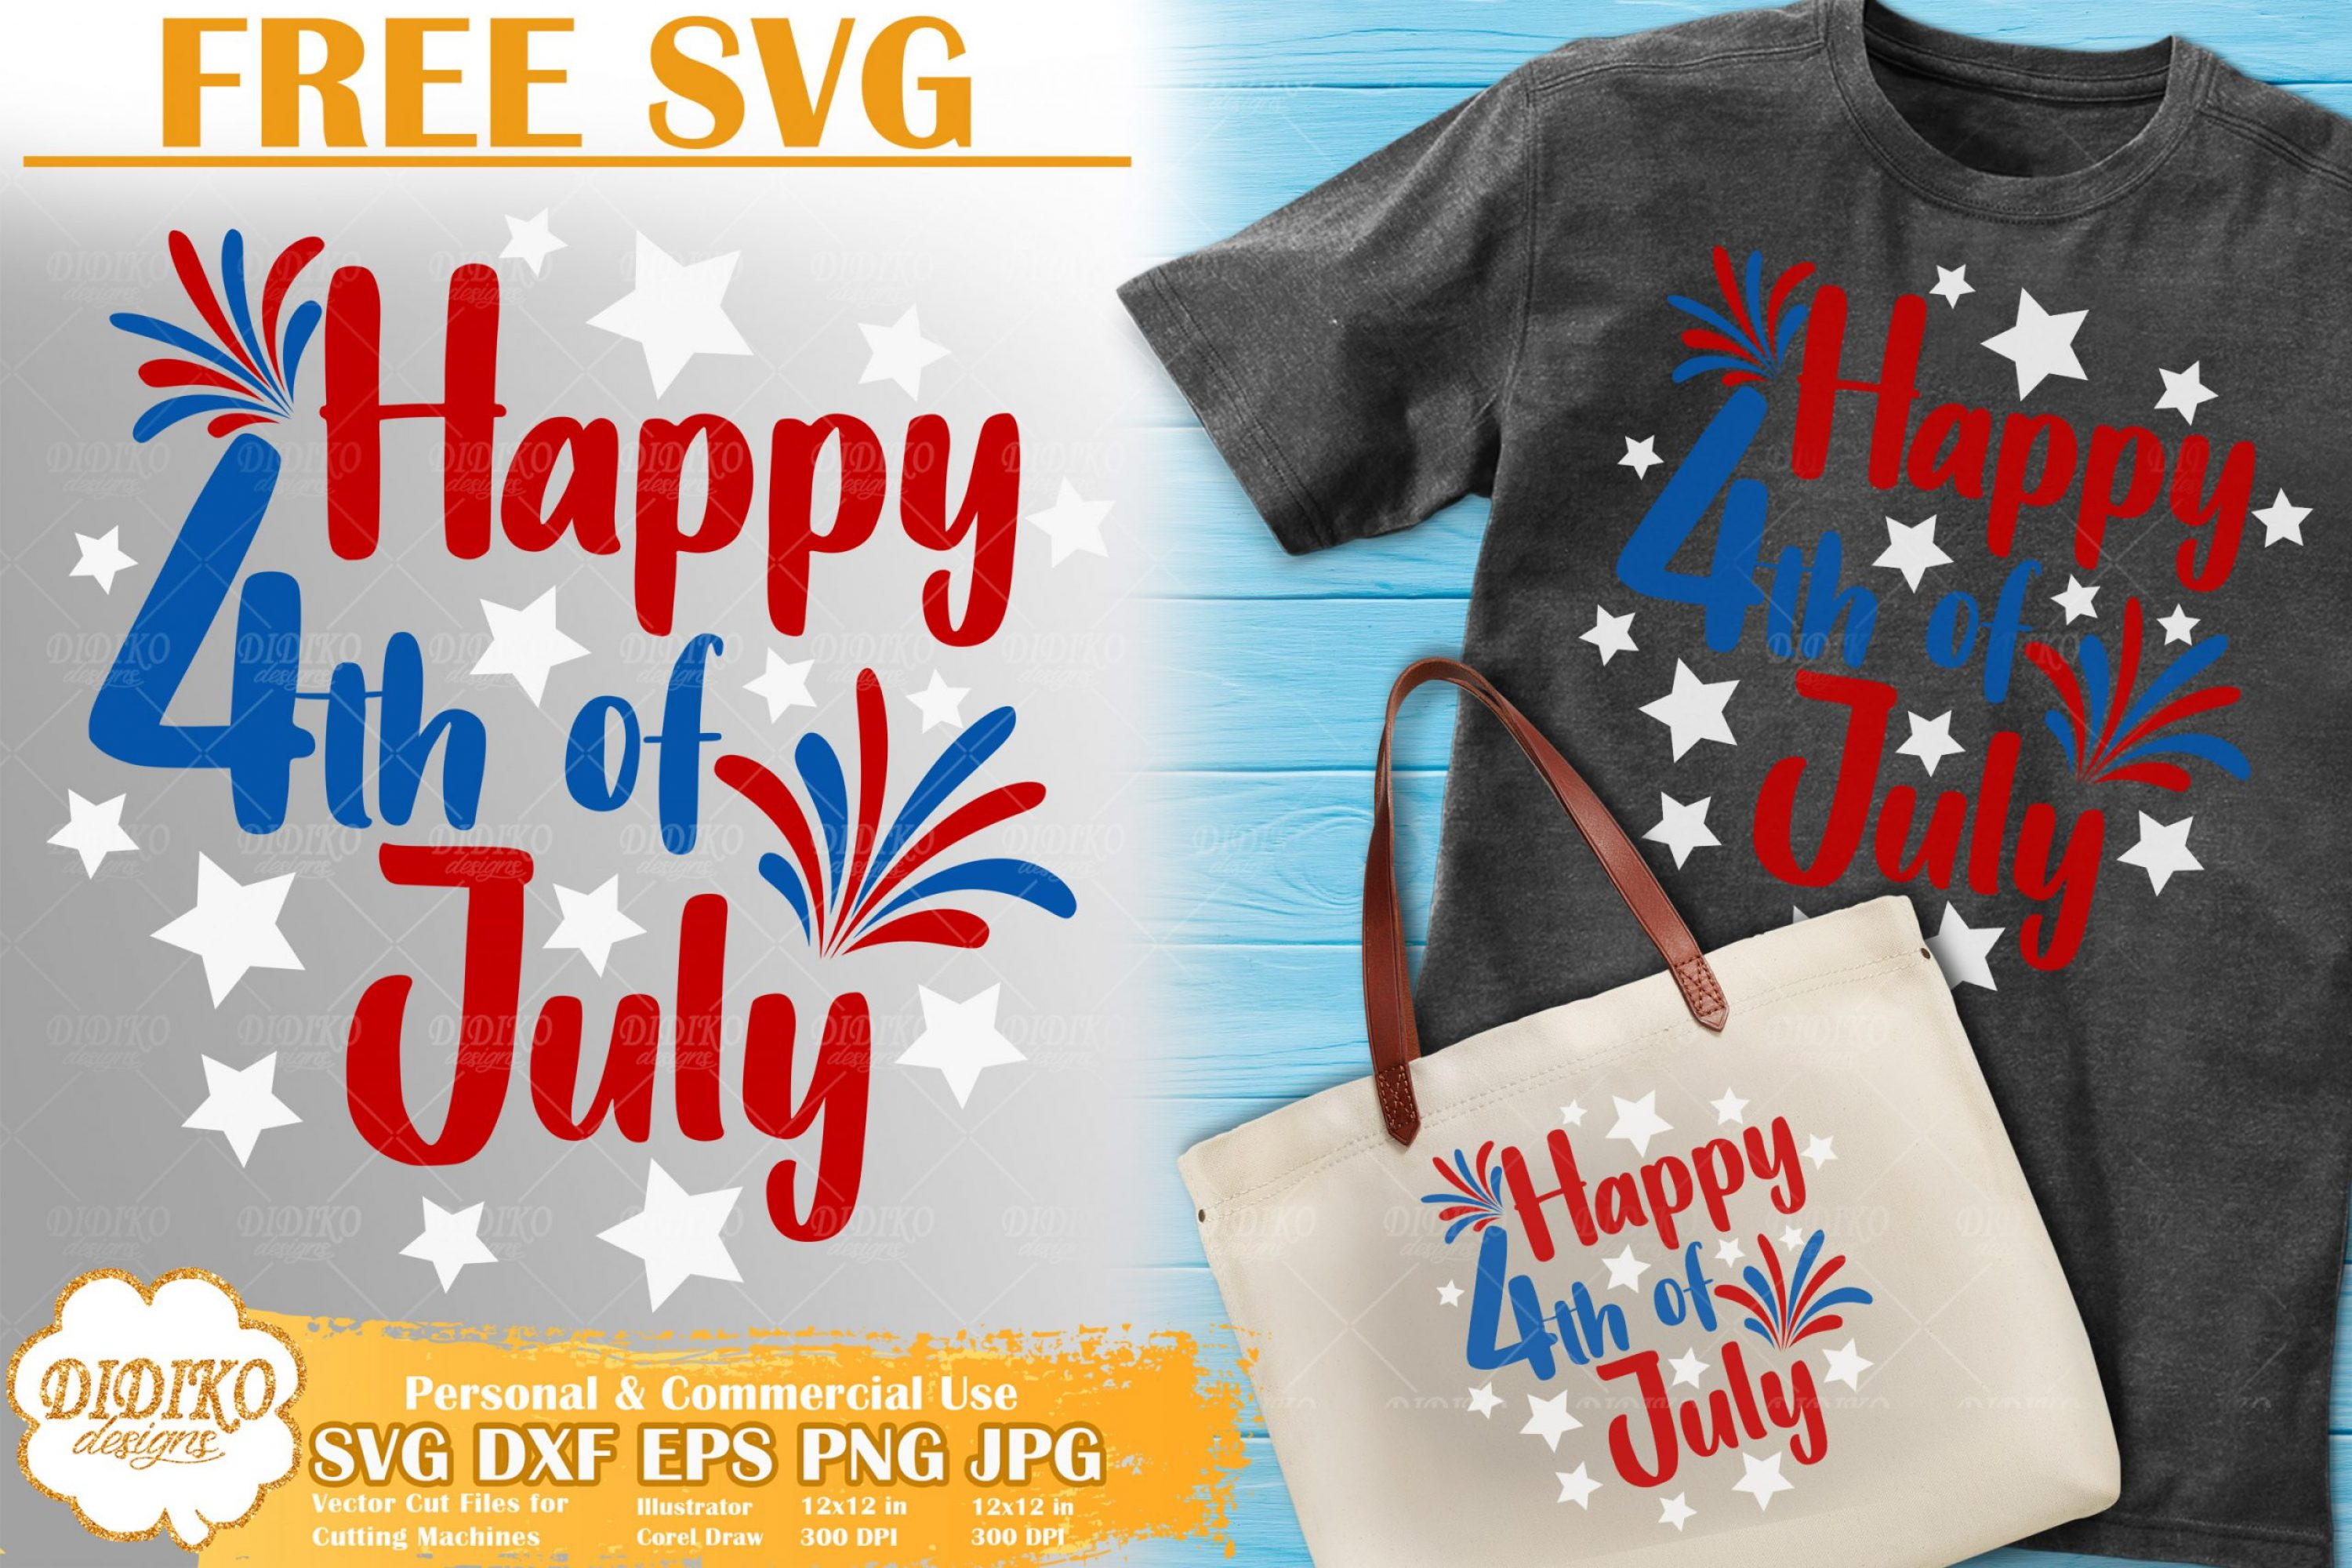 Happy 4th of July SVG Free | Free SVG Cut File